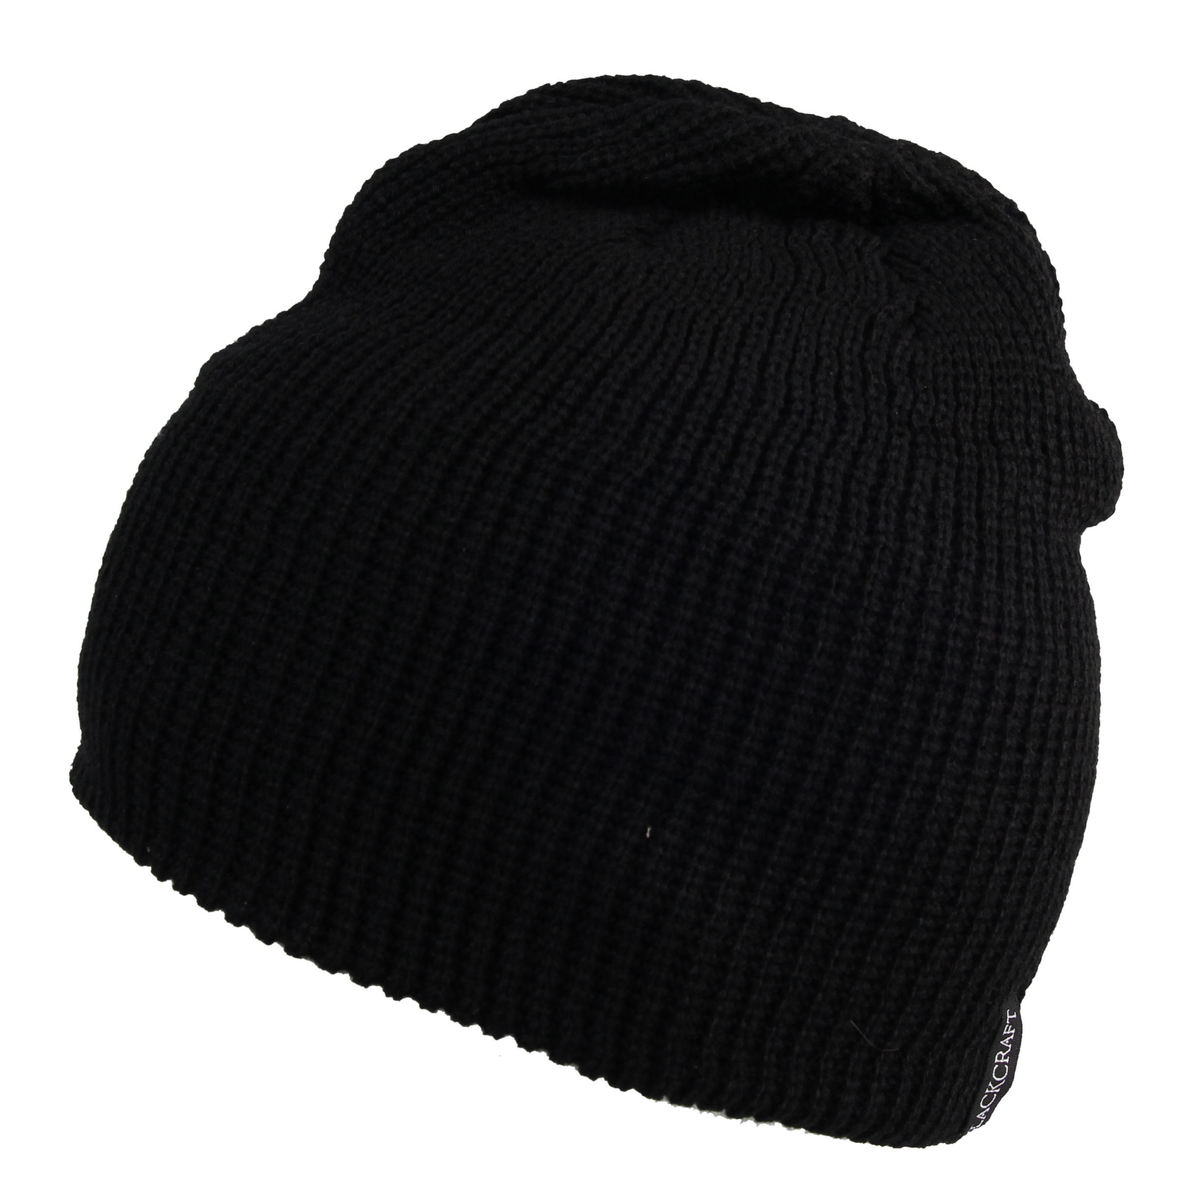 kulich BLACK CRAFT - Knit Beanie - BN002KT